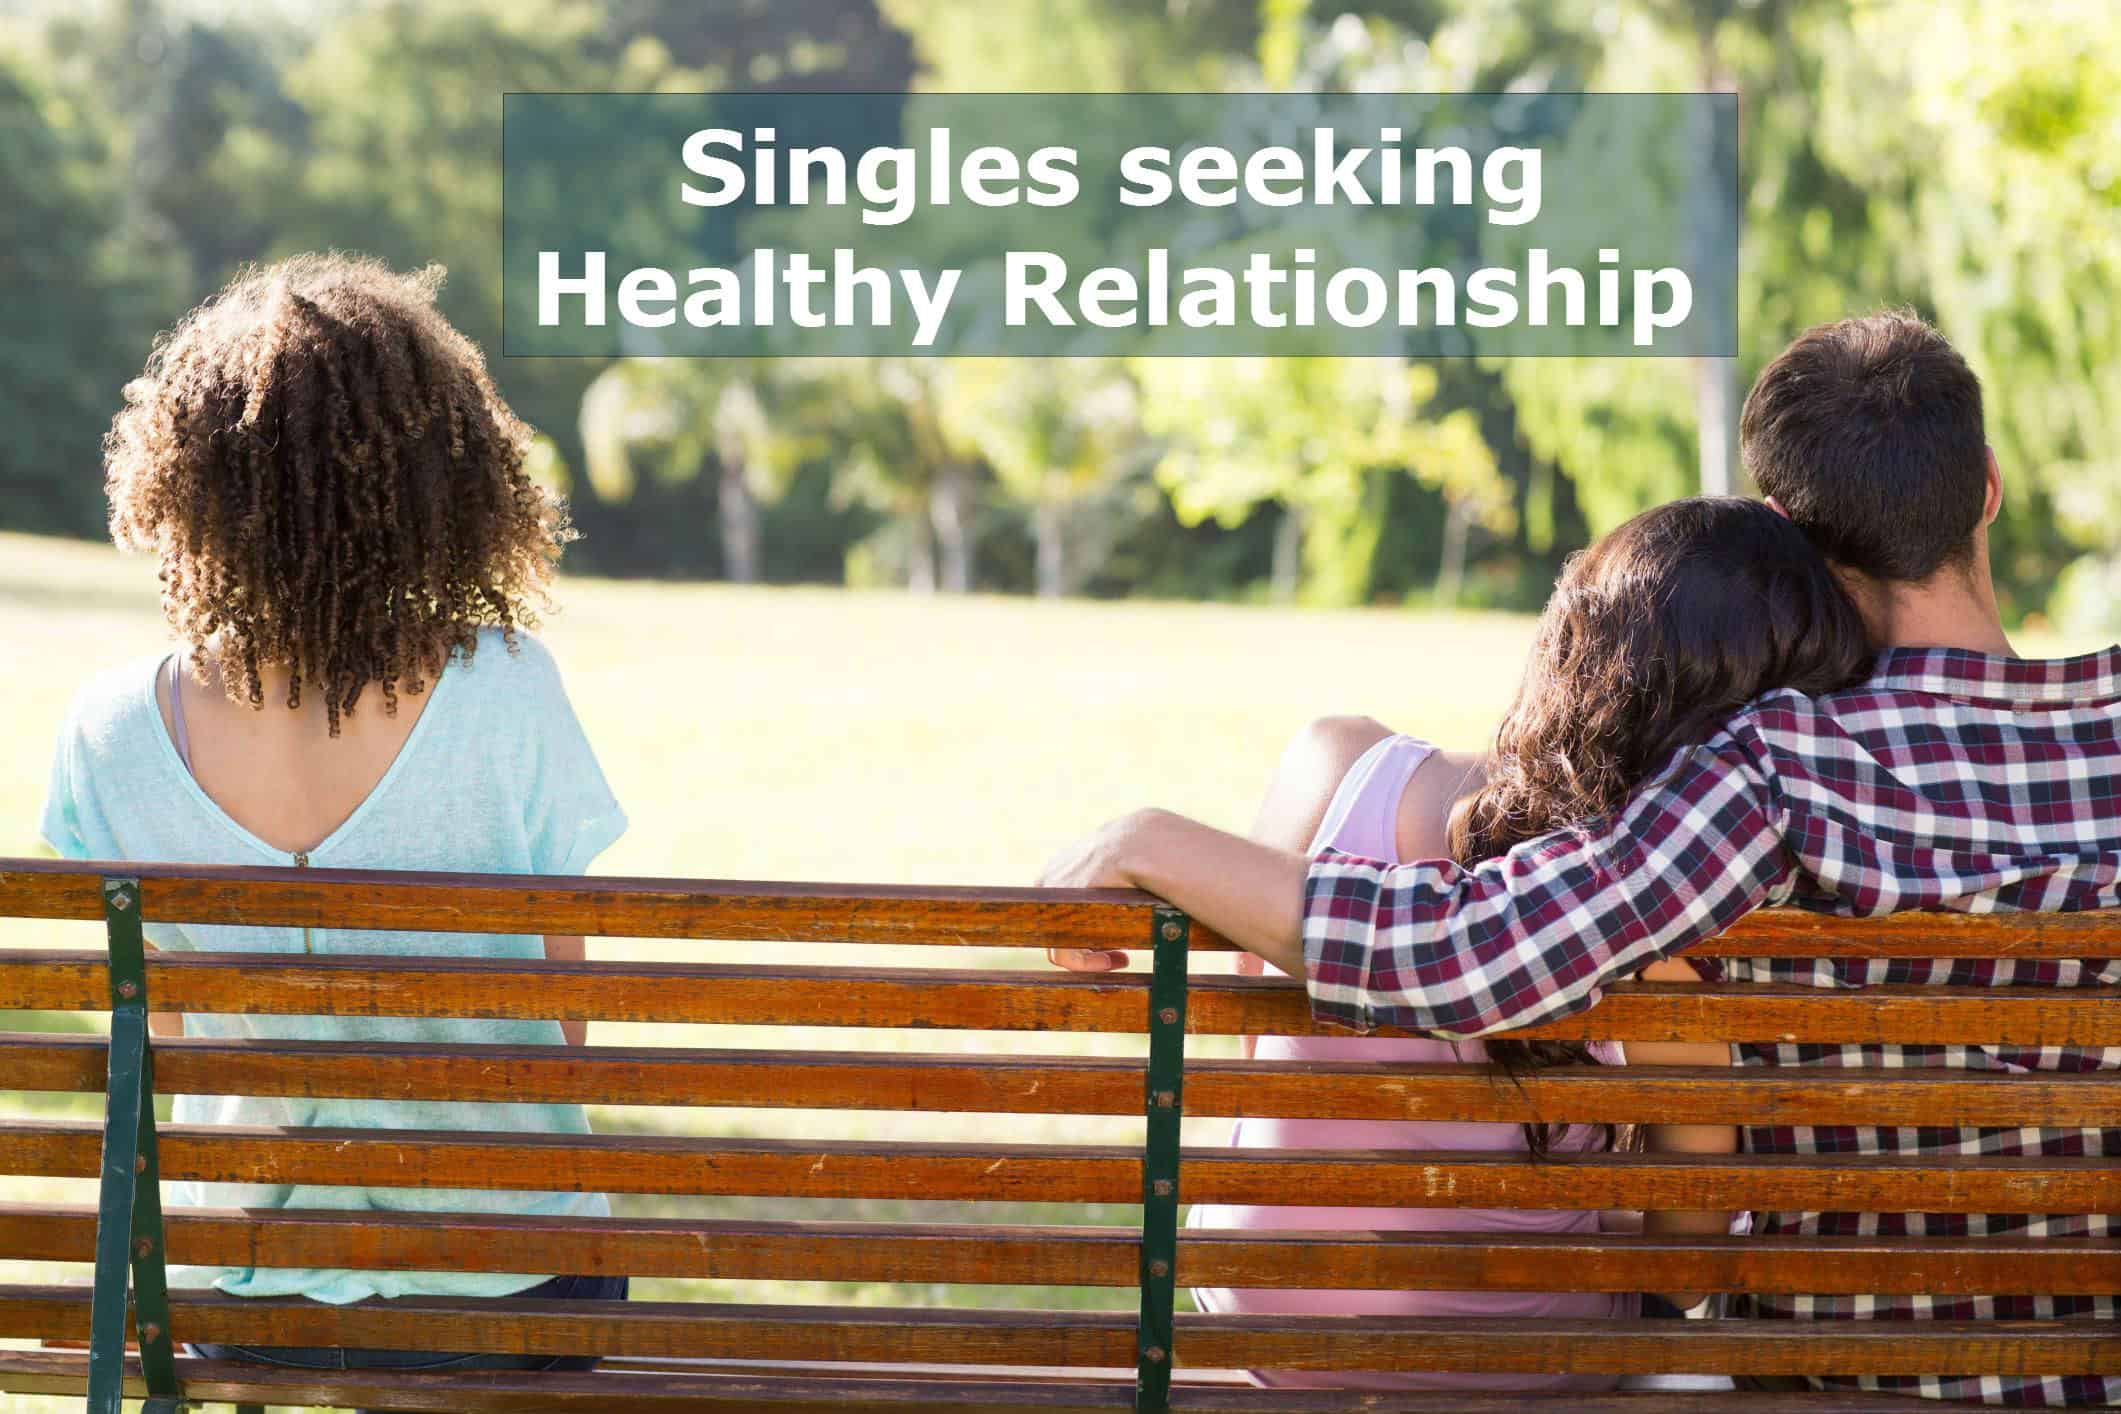 Help for Singles Seeking Healthy Relationships